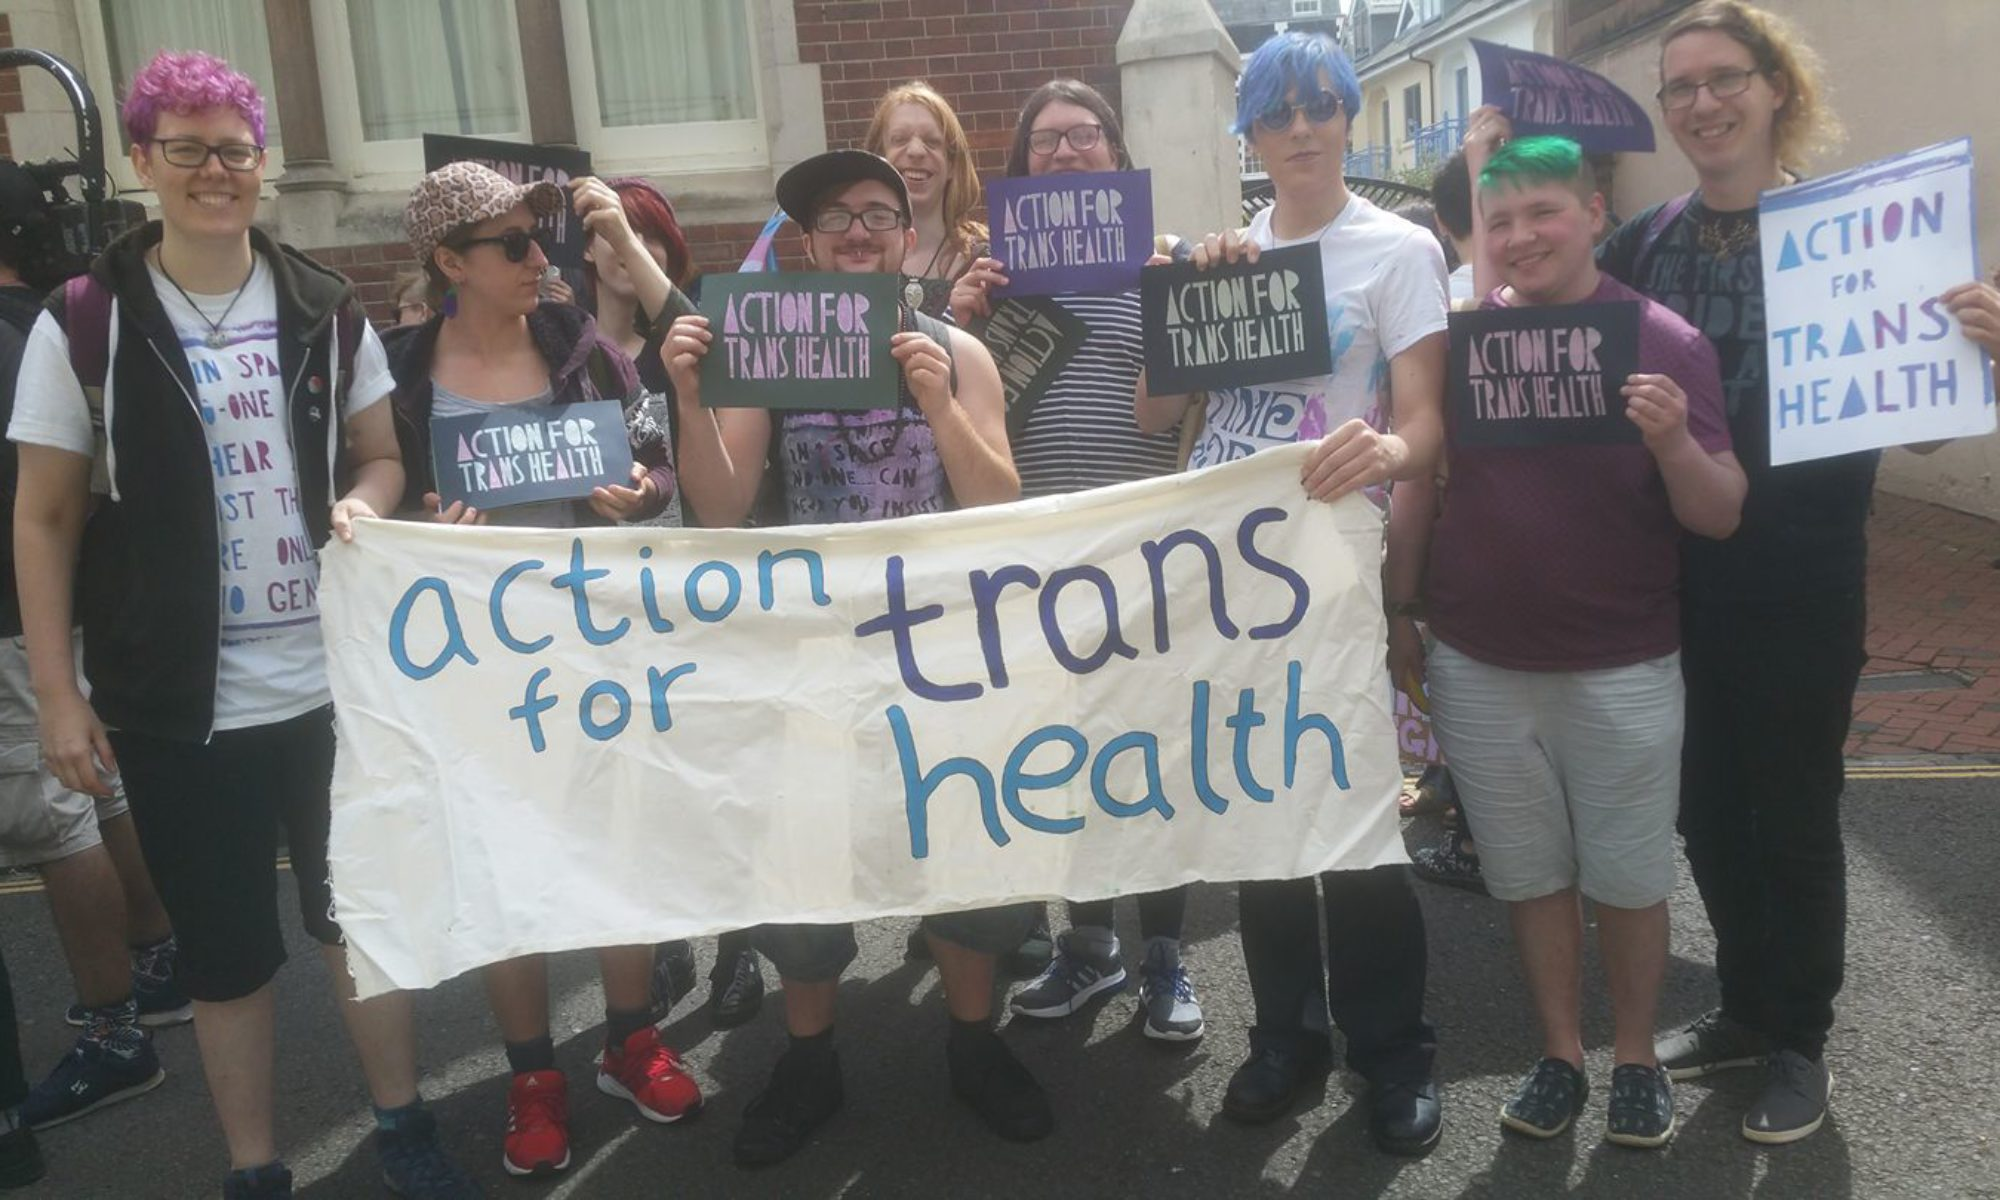 Action for Trans Health